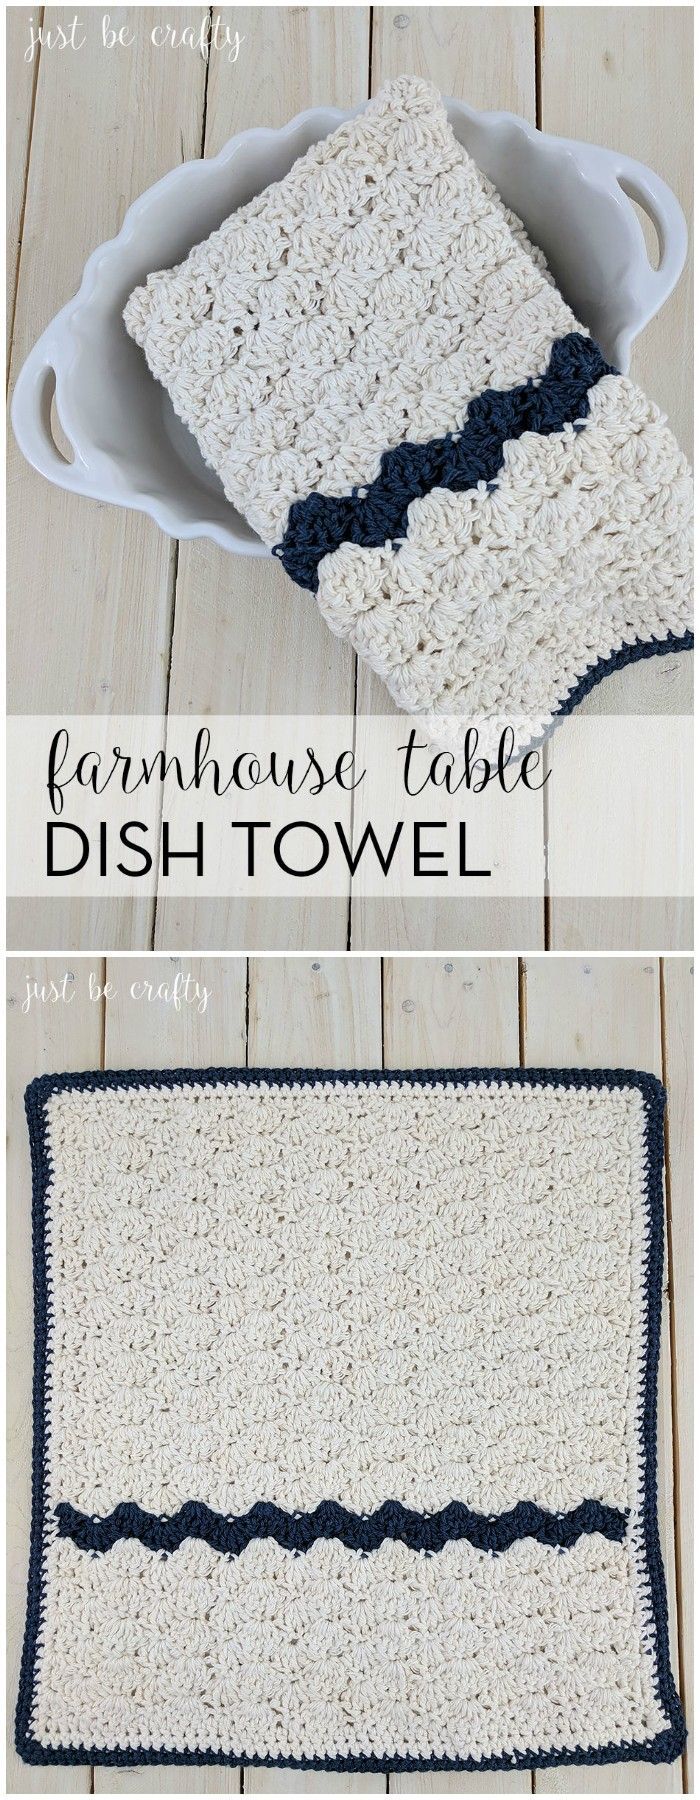 Crochet Dishcloth PatternTo Beautify Your Kitchen | Crazy for ...